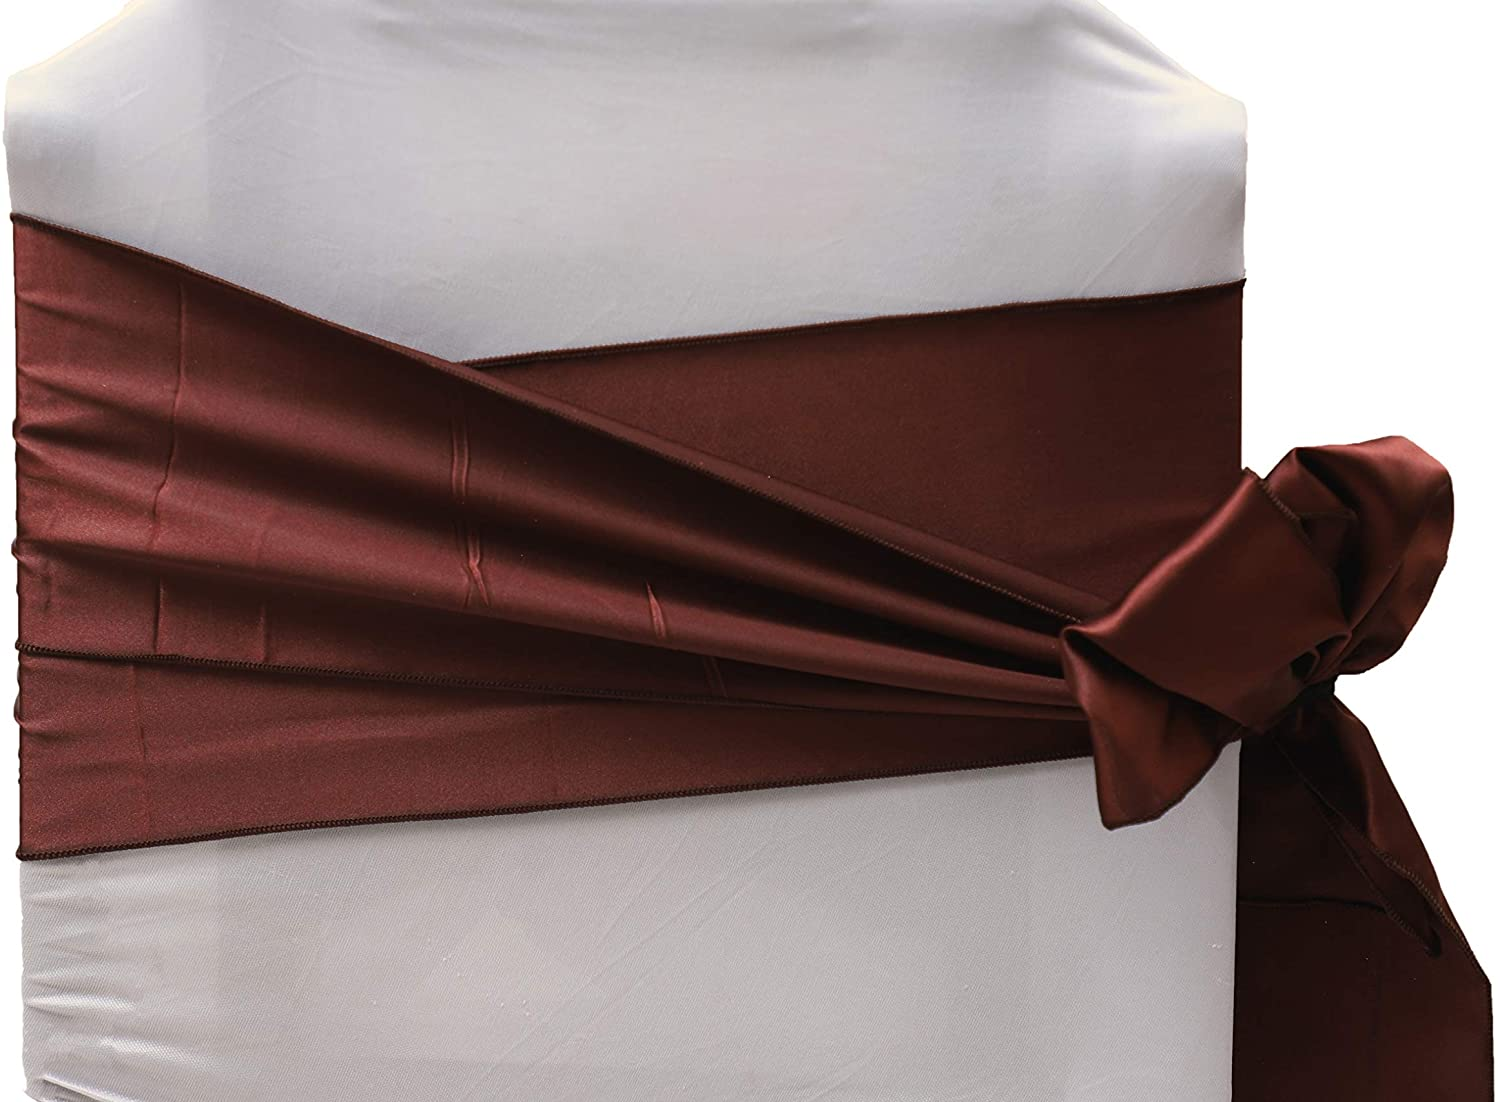 Vinex Pack of 12 Satin Chair Sashes Bow Sash for Wedding Party Engagement Even Birthday Graduation Meeting Banquet Decoration Event Supplies Party Decoration Chair Cover Sash - Dark Coffee